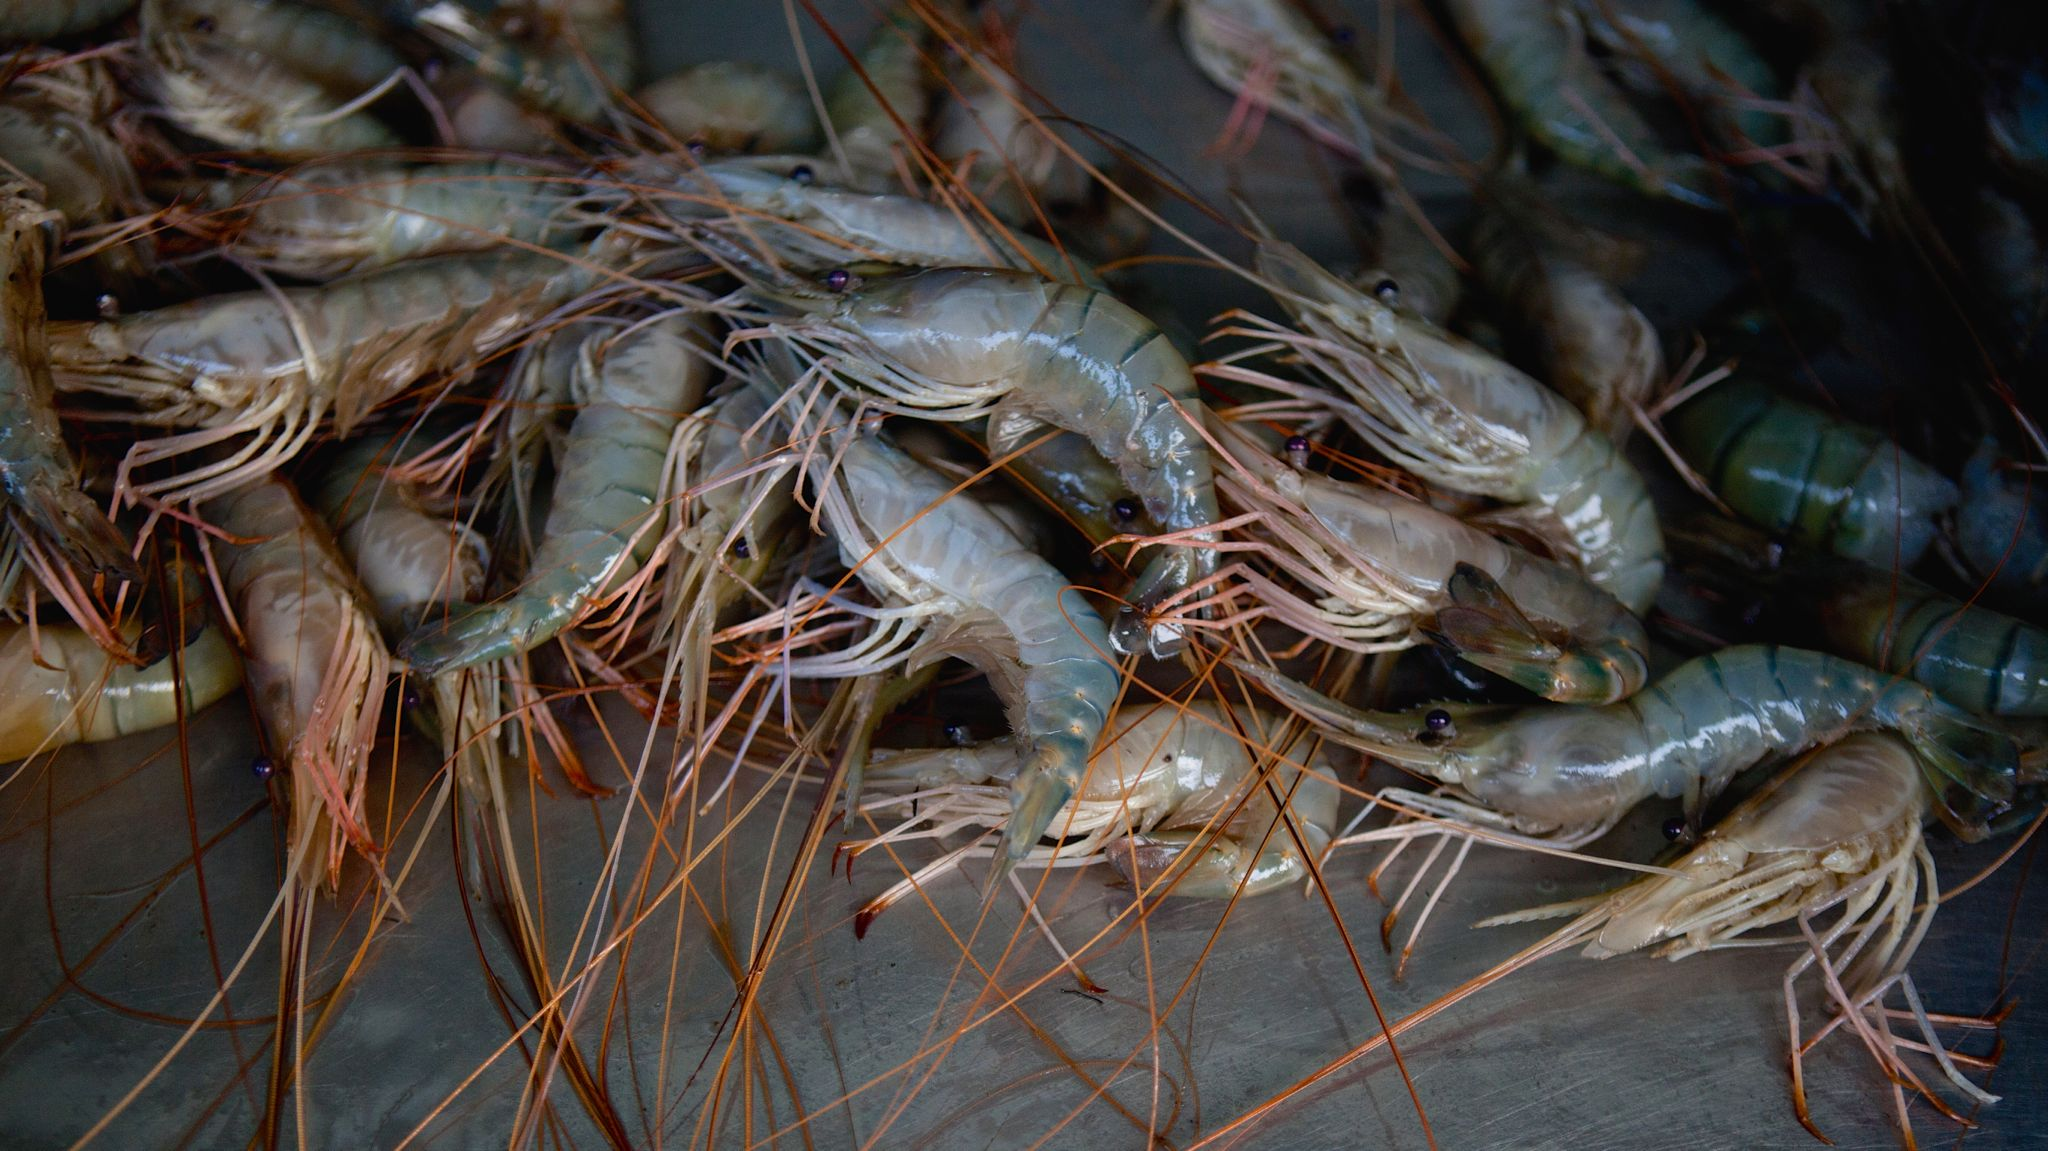 How Thailand S Dying Shrimp Are Killing An Indian Village